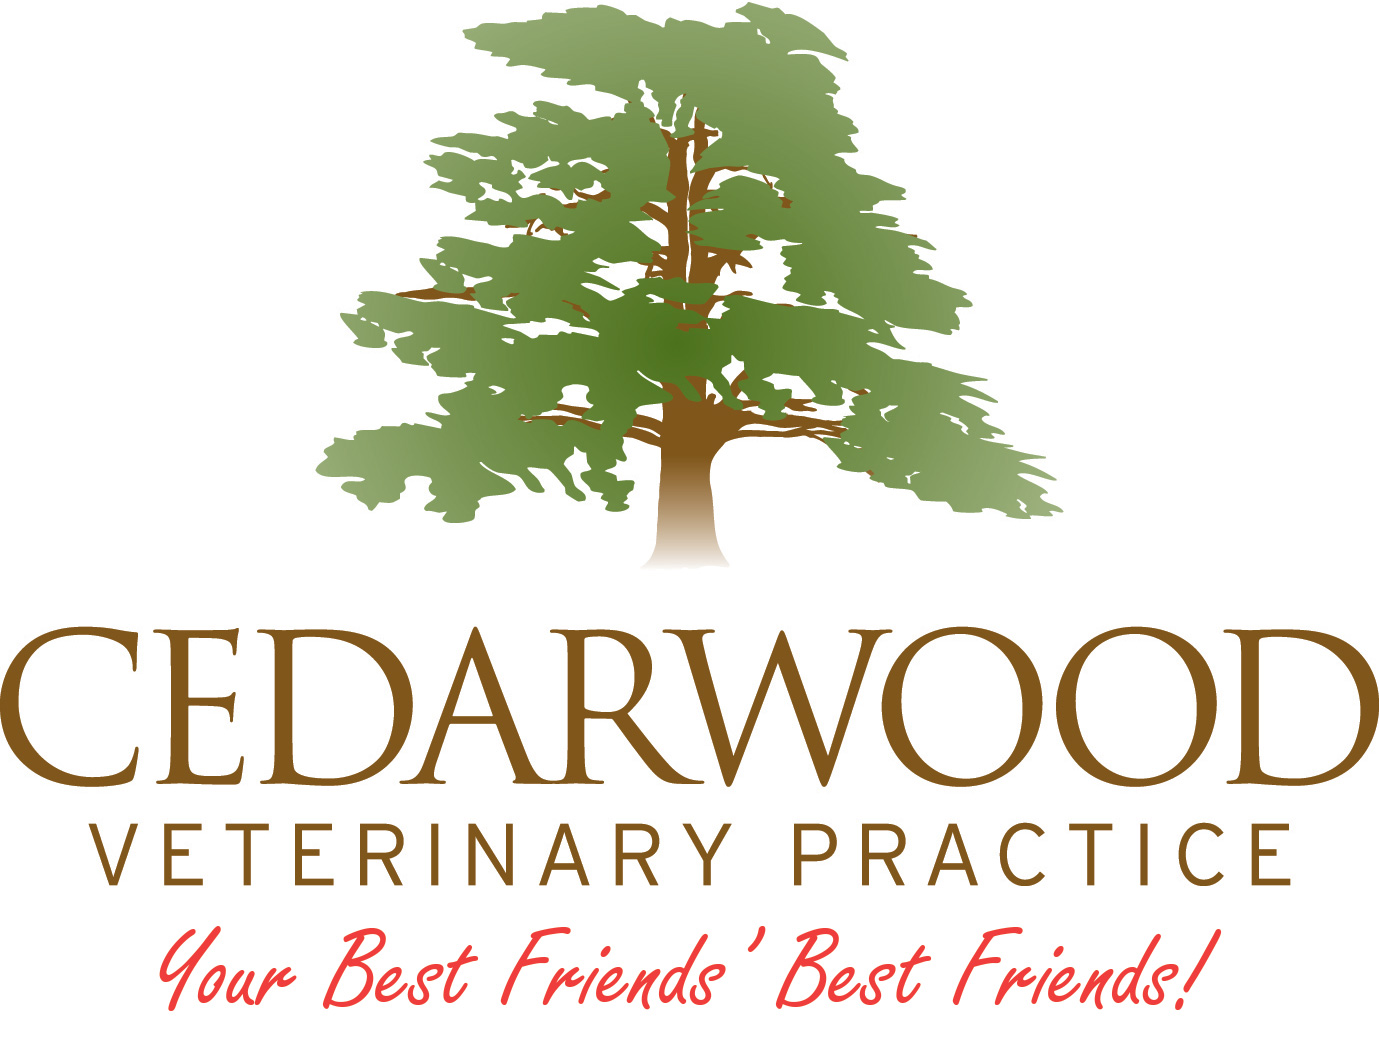 Cedarwood Veterinary Practice